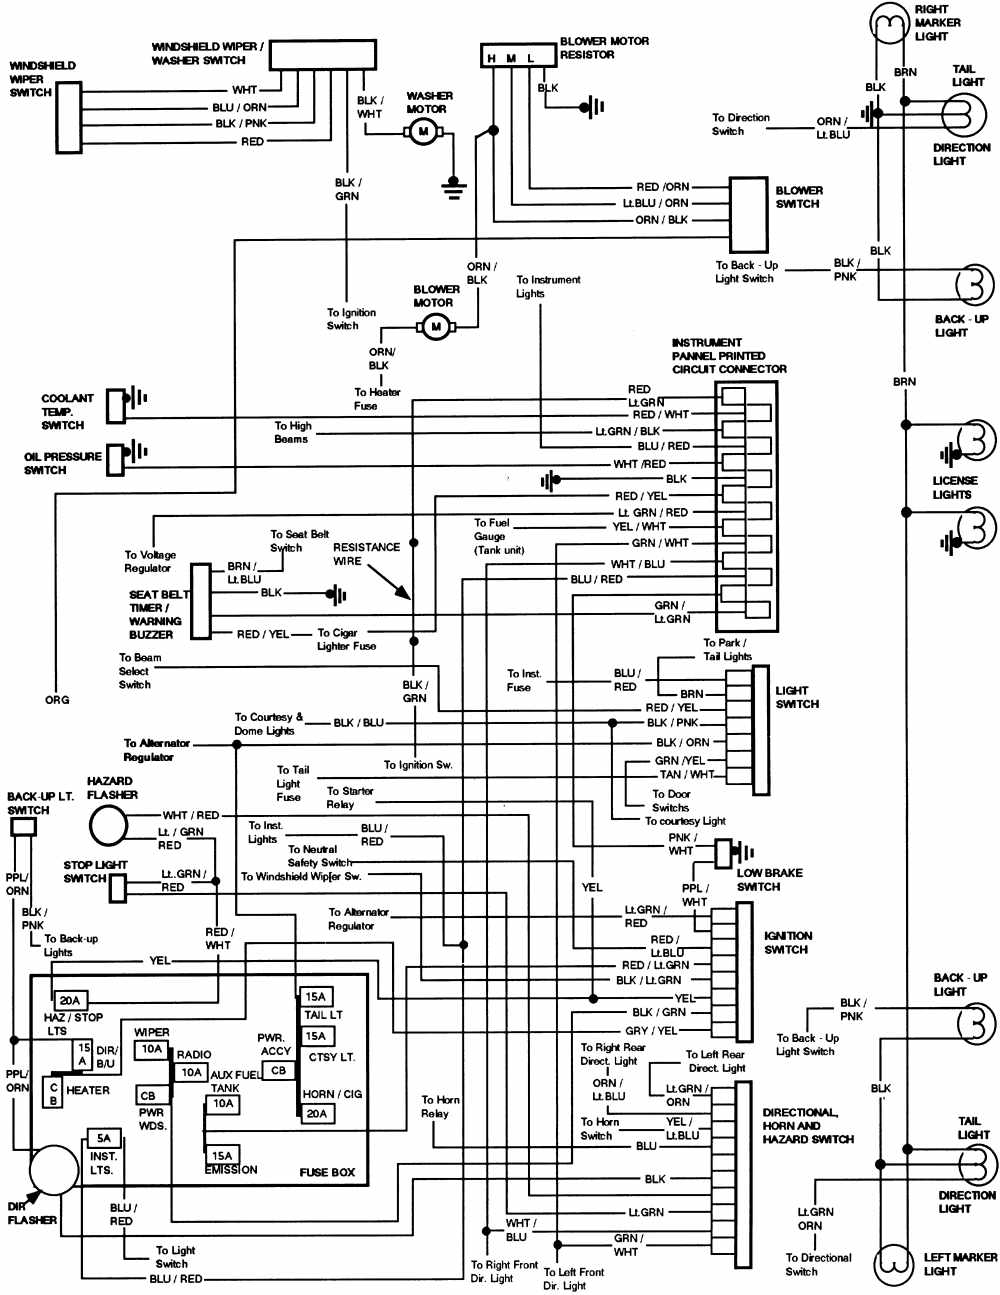 chevy g20 van wiring diagram on 2004 volvo penta alternator wiring